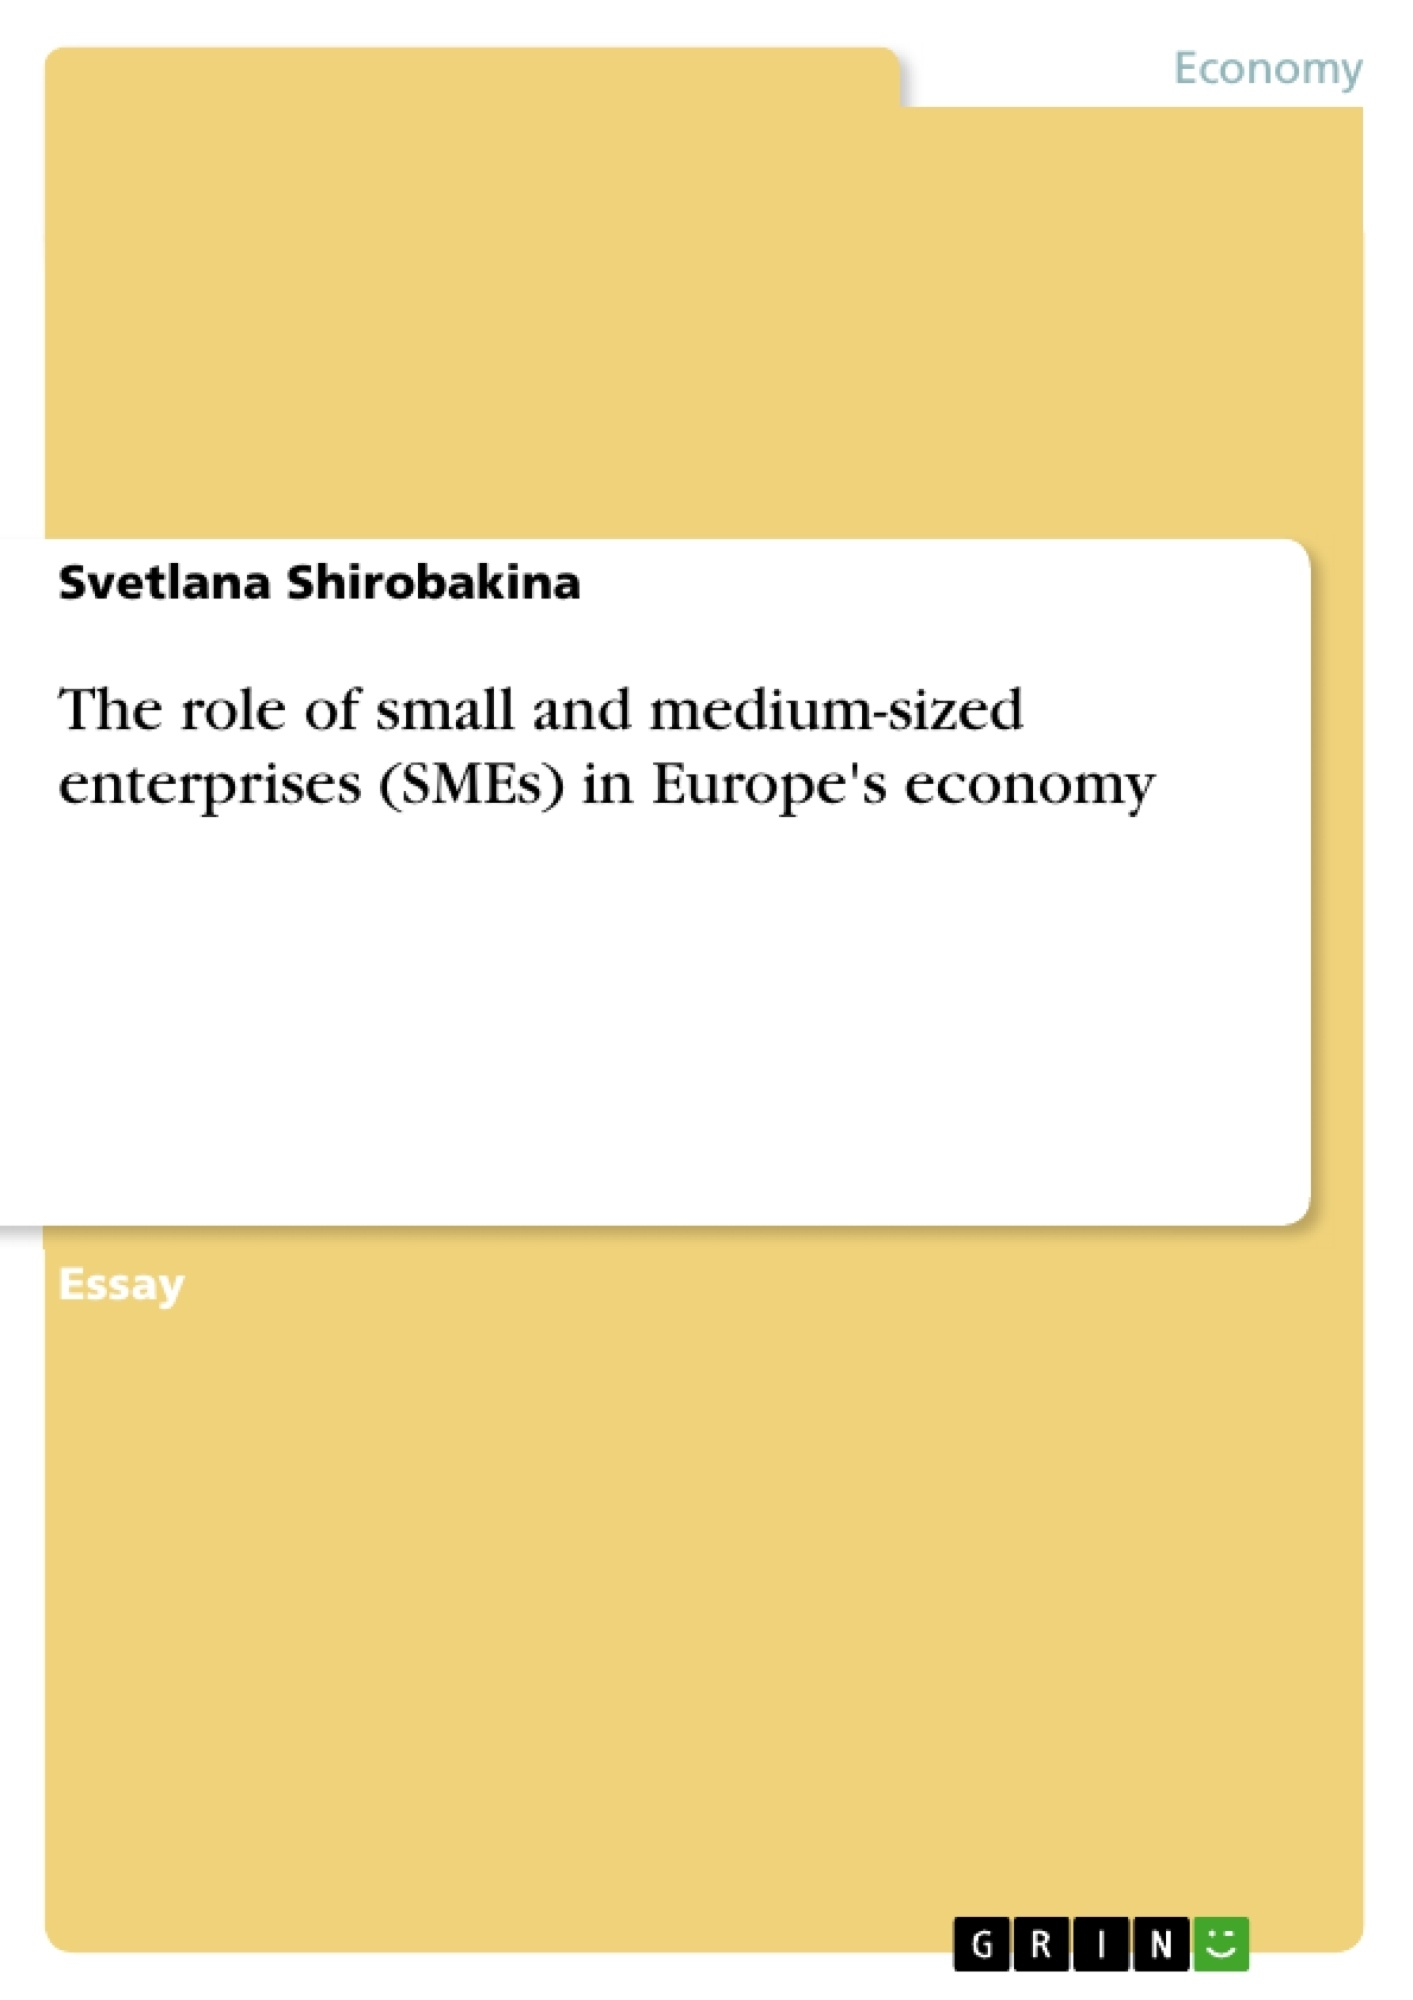 Title: The role of small and medium-sized enterprises (SMEs) in Europe's economy